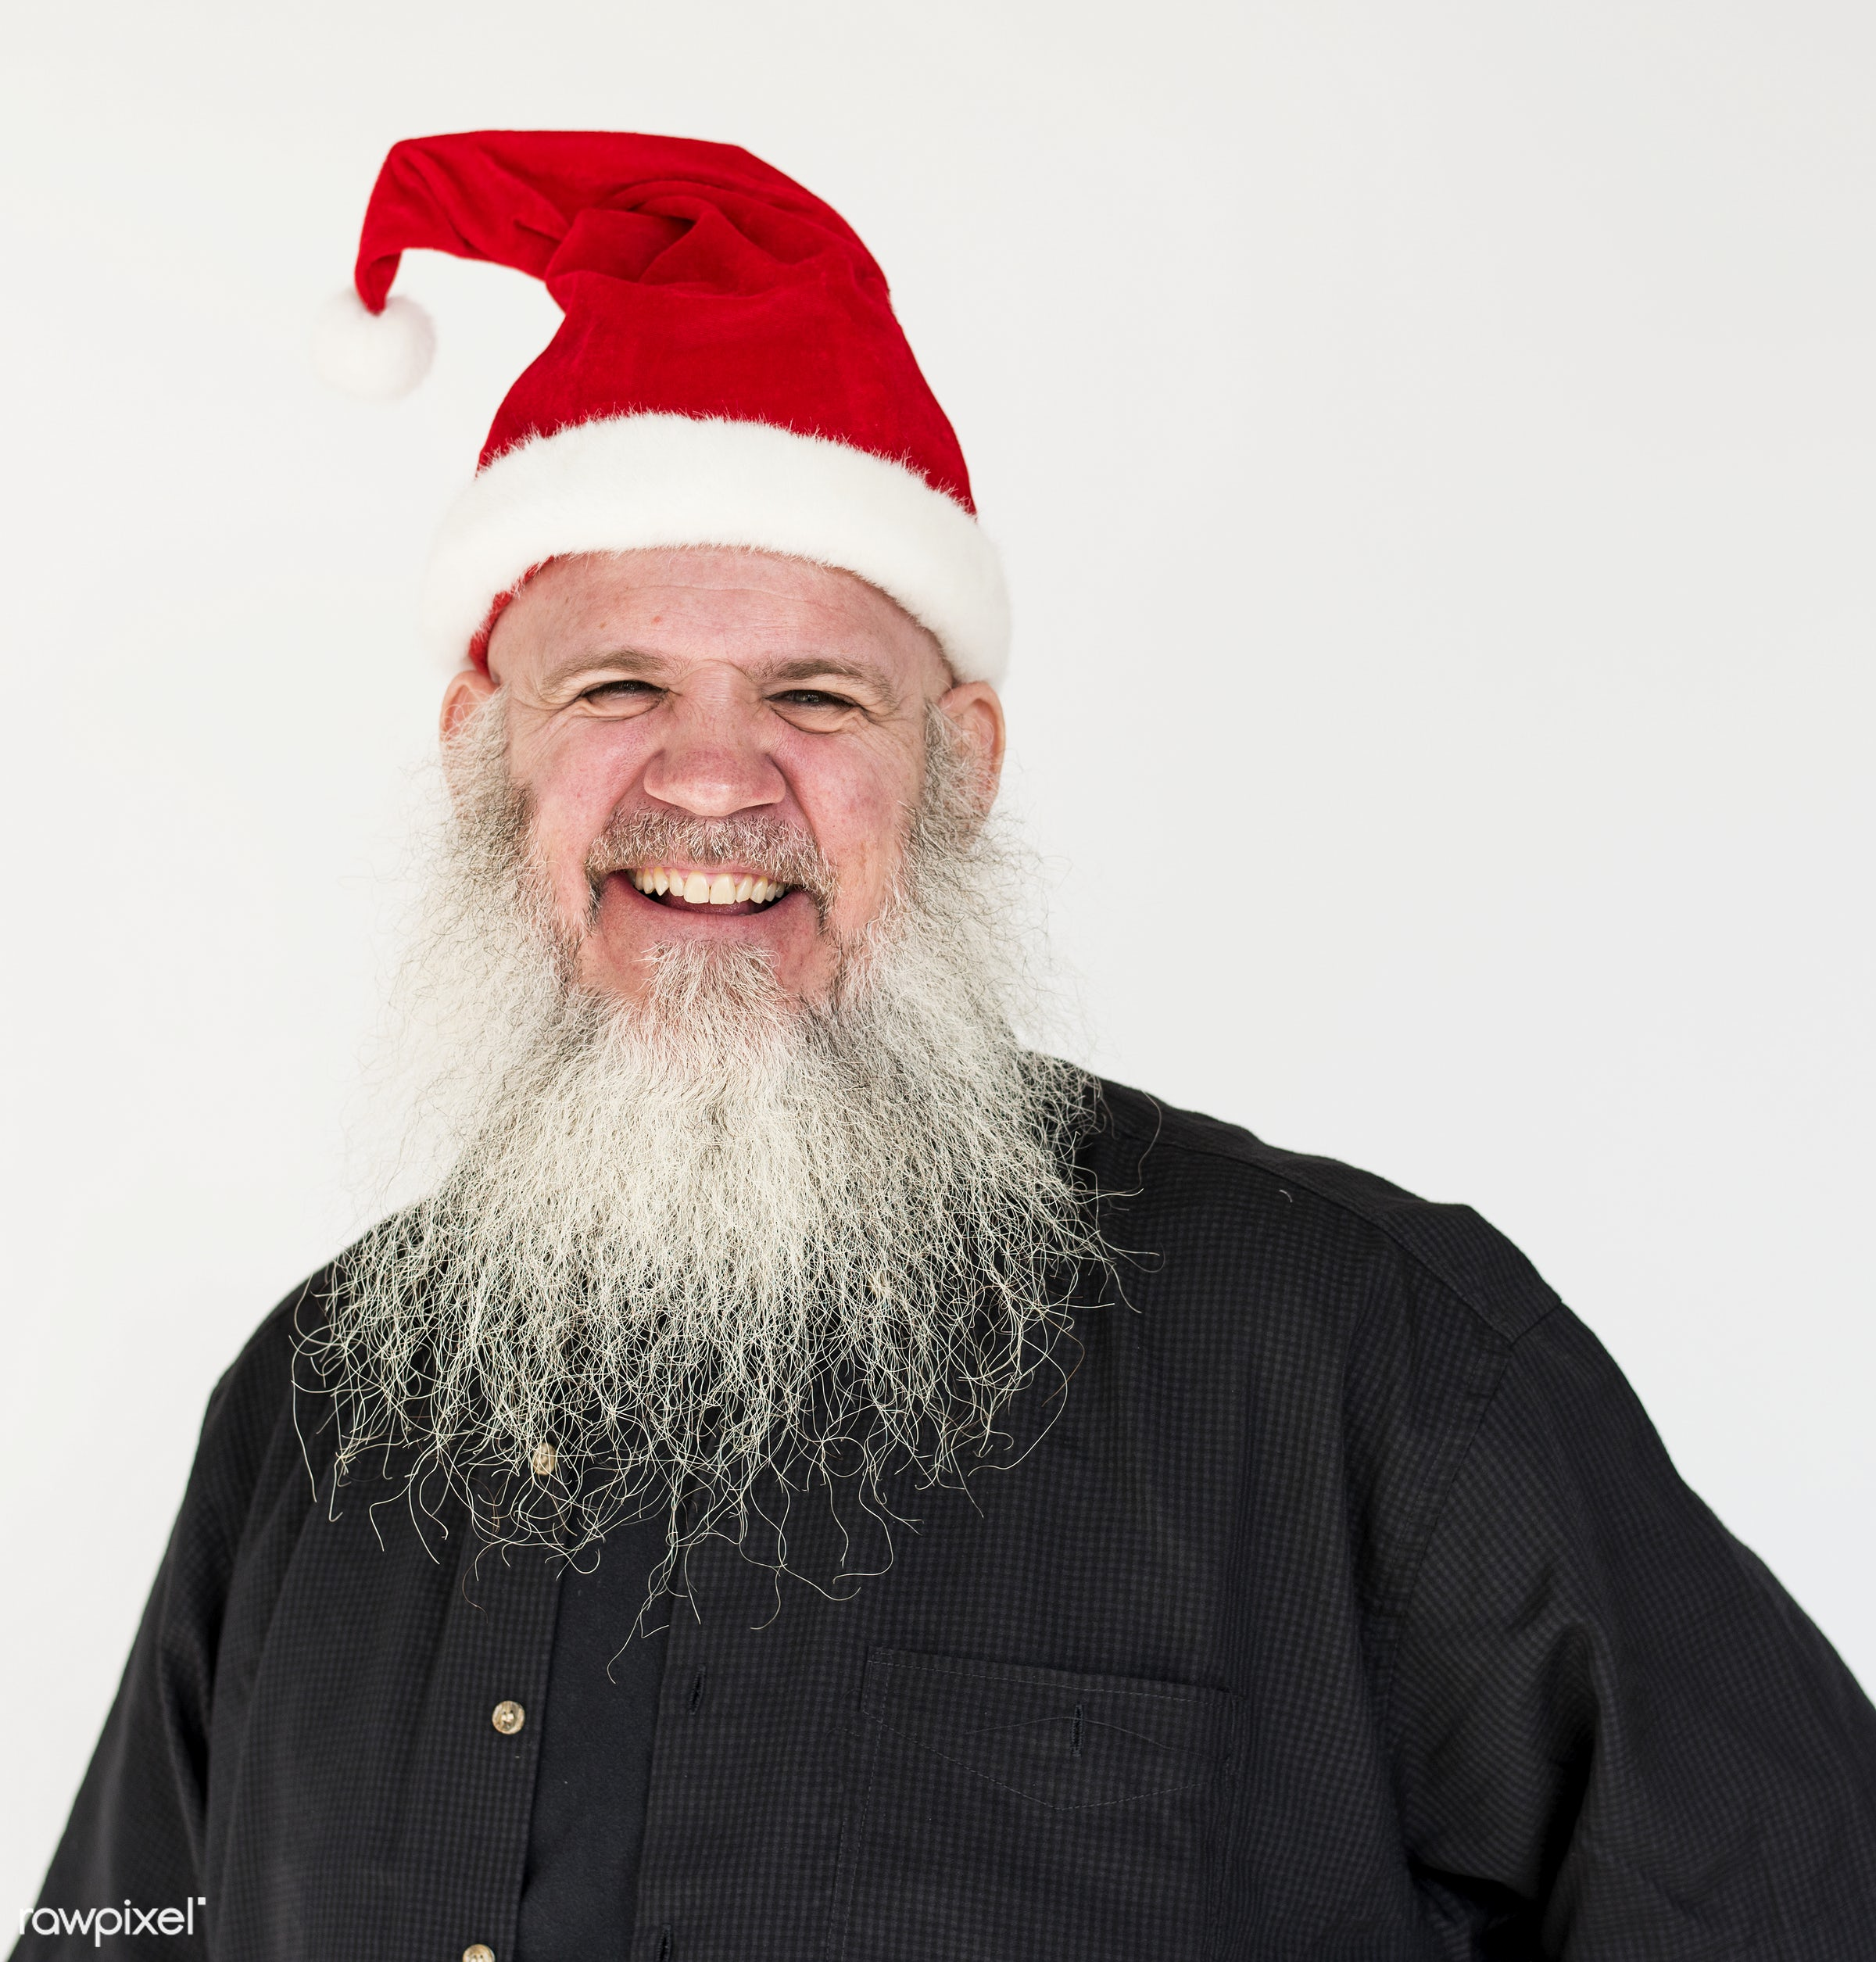 studio, expression, person, model, isolated on white, people, race, hat, style, santa, casual, lifestyle, men, man, isolated...